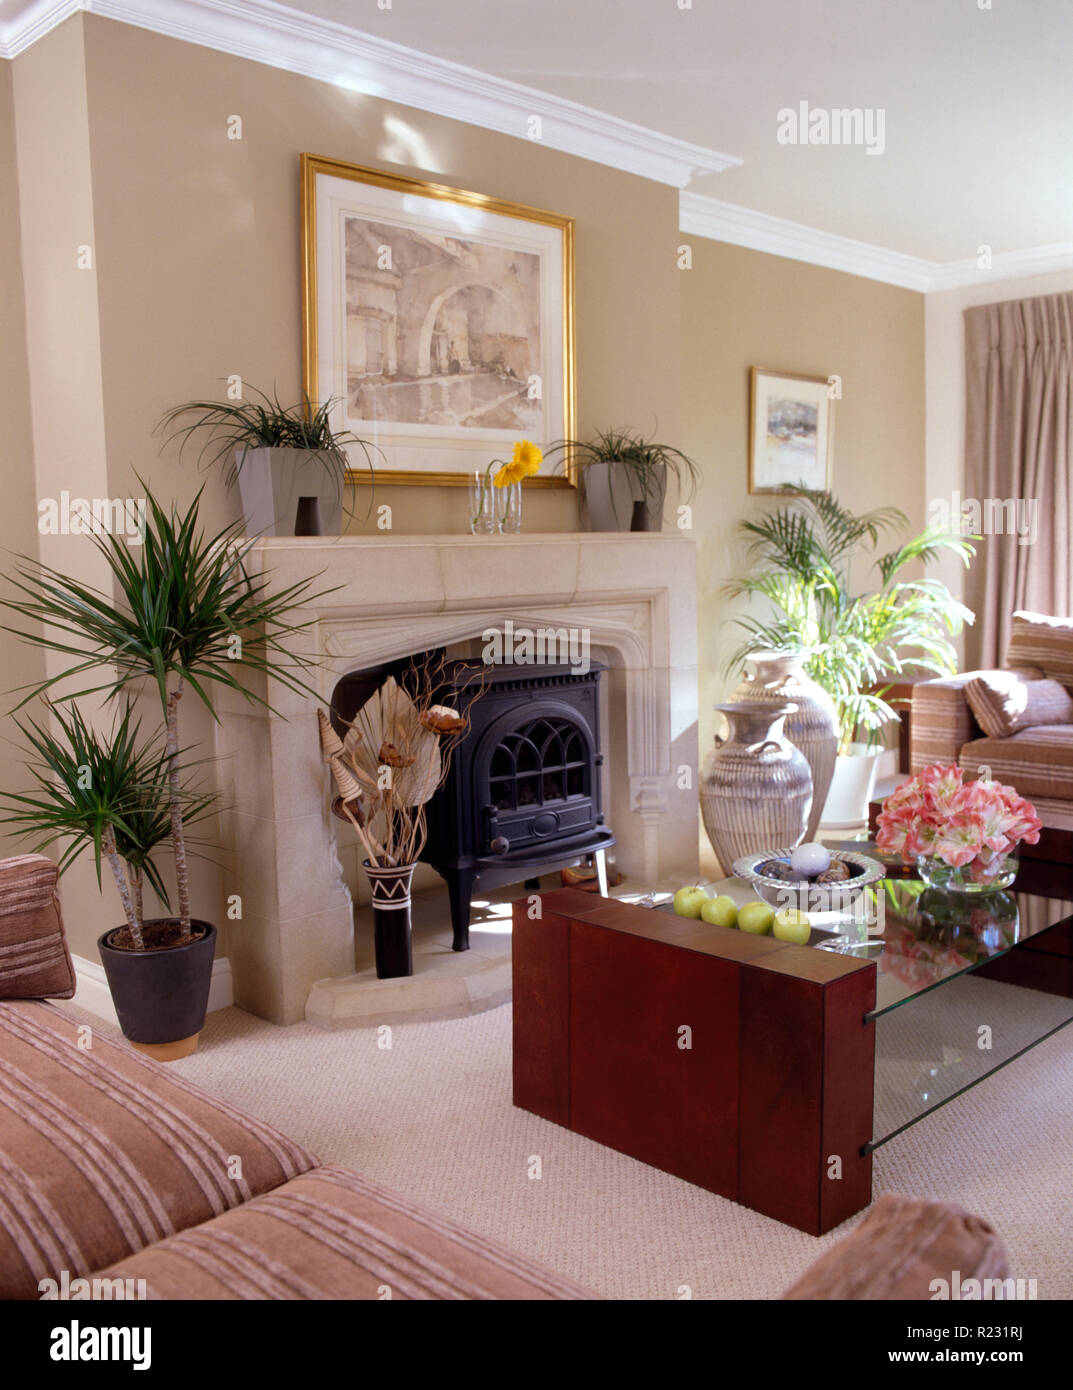 Houseplants either side of a stone fireplace with a wood burning stove in a townhouse living room with a glass topped coffee table - Stock Image